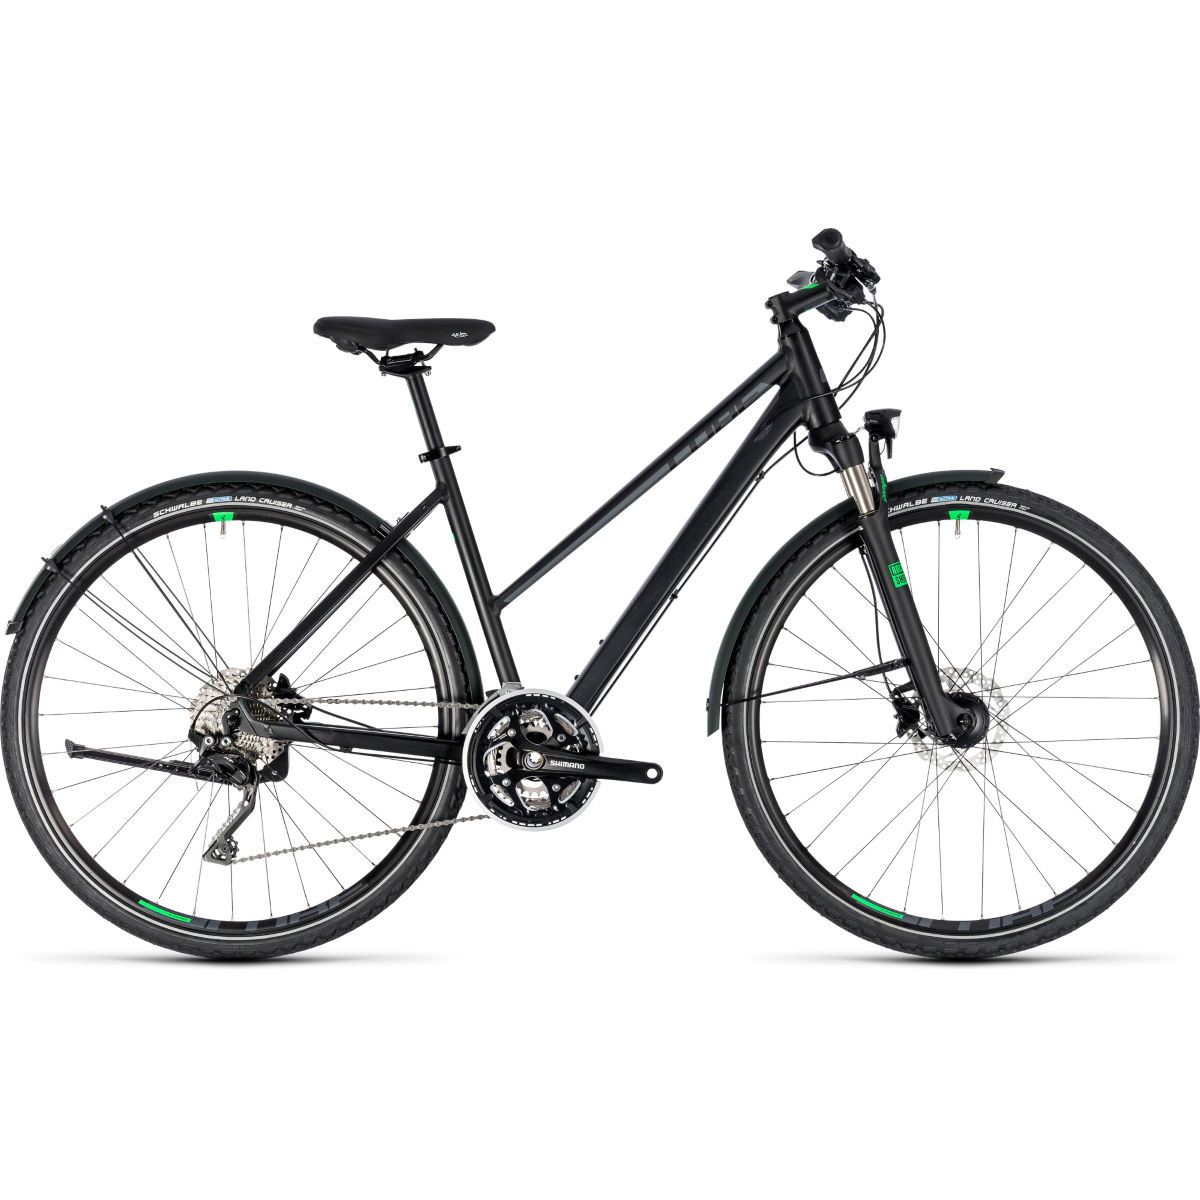 Cube Cross All Road Trapeze Urban Bike (2018) - Bicicletas híbridas